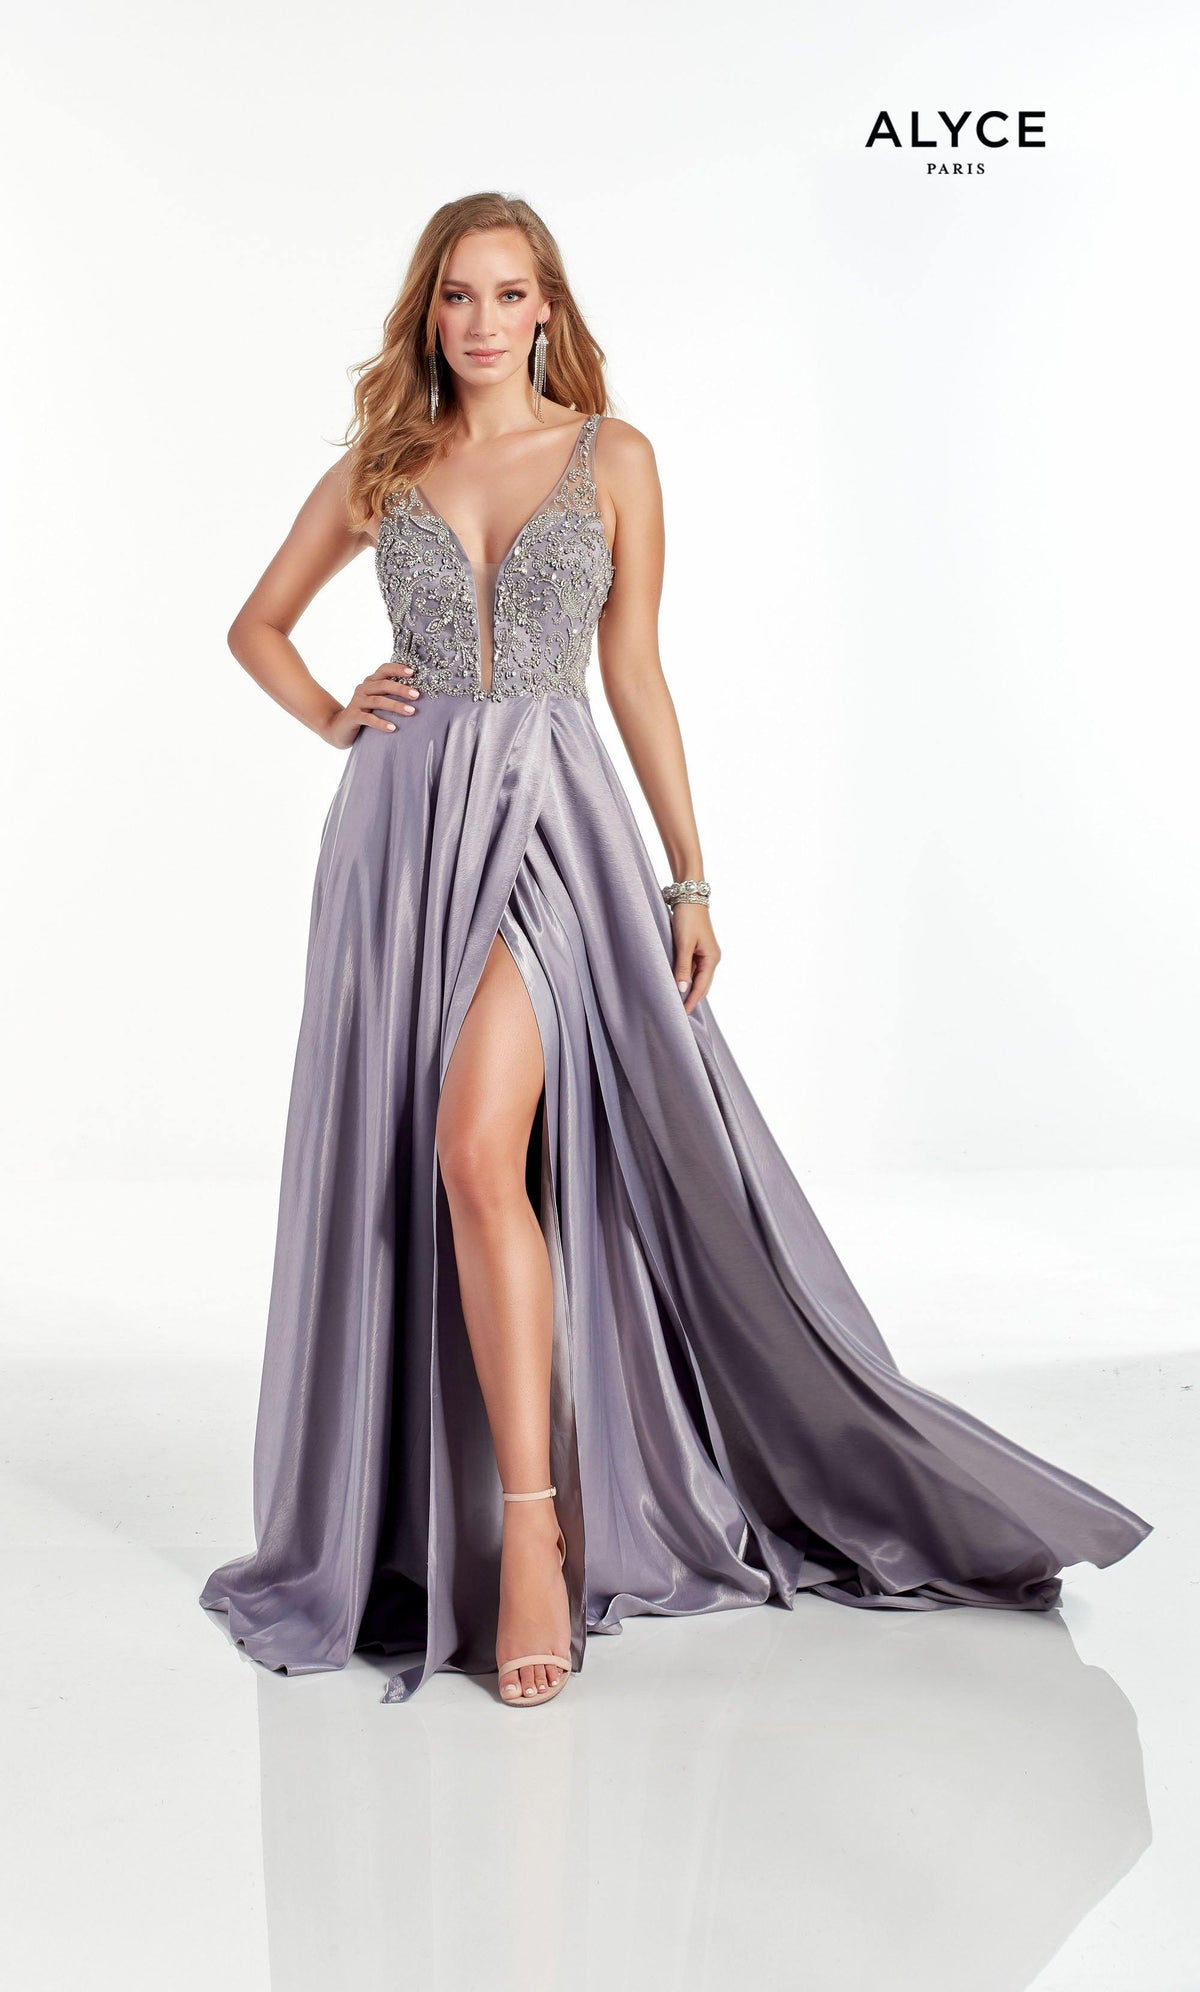 Lilac-Grey flowy prom dress with a plunging neckline, jewel embellished bodice, and front slit